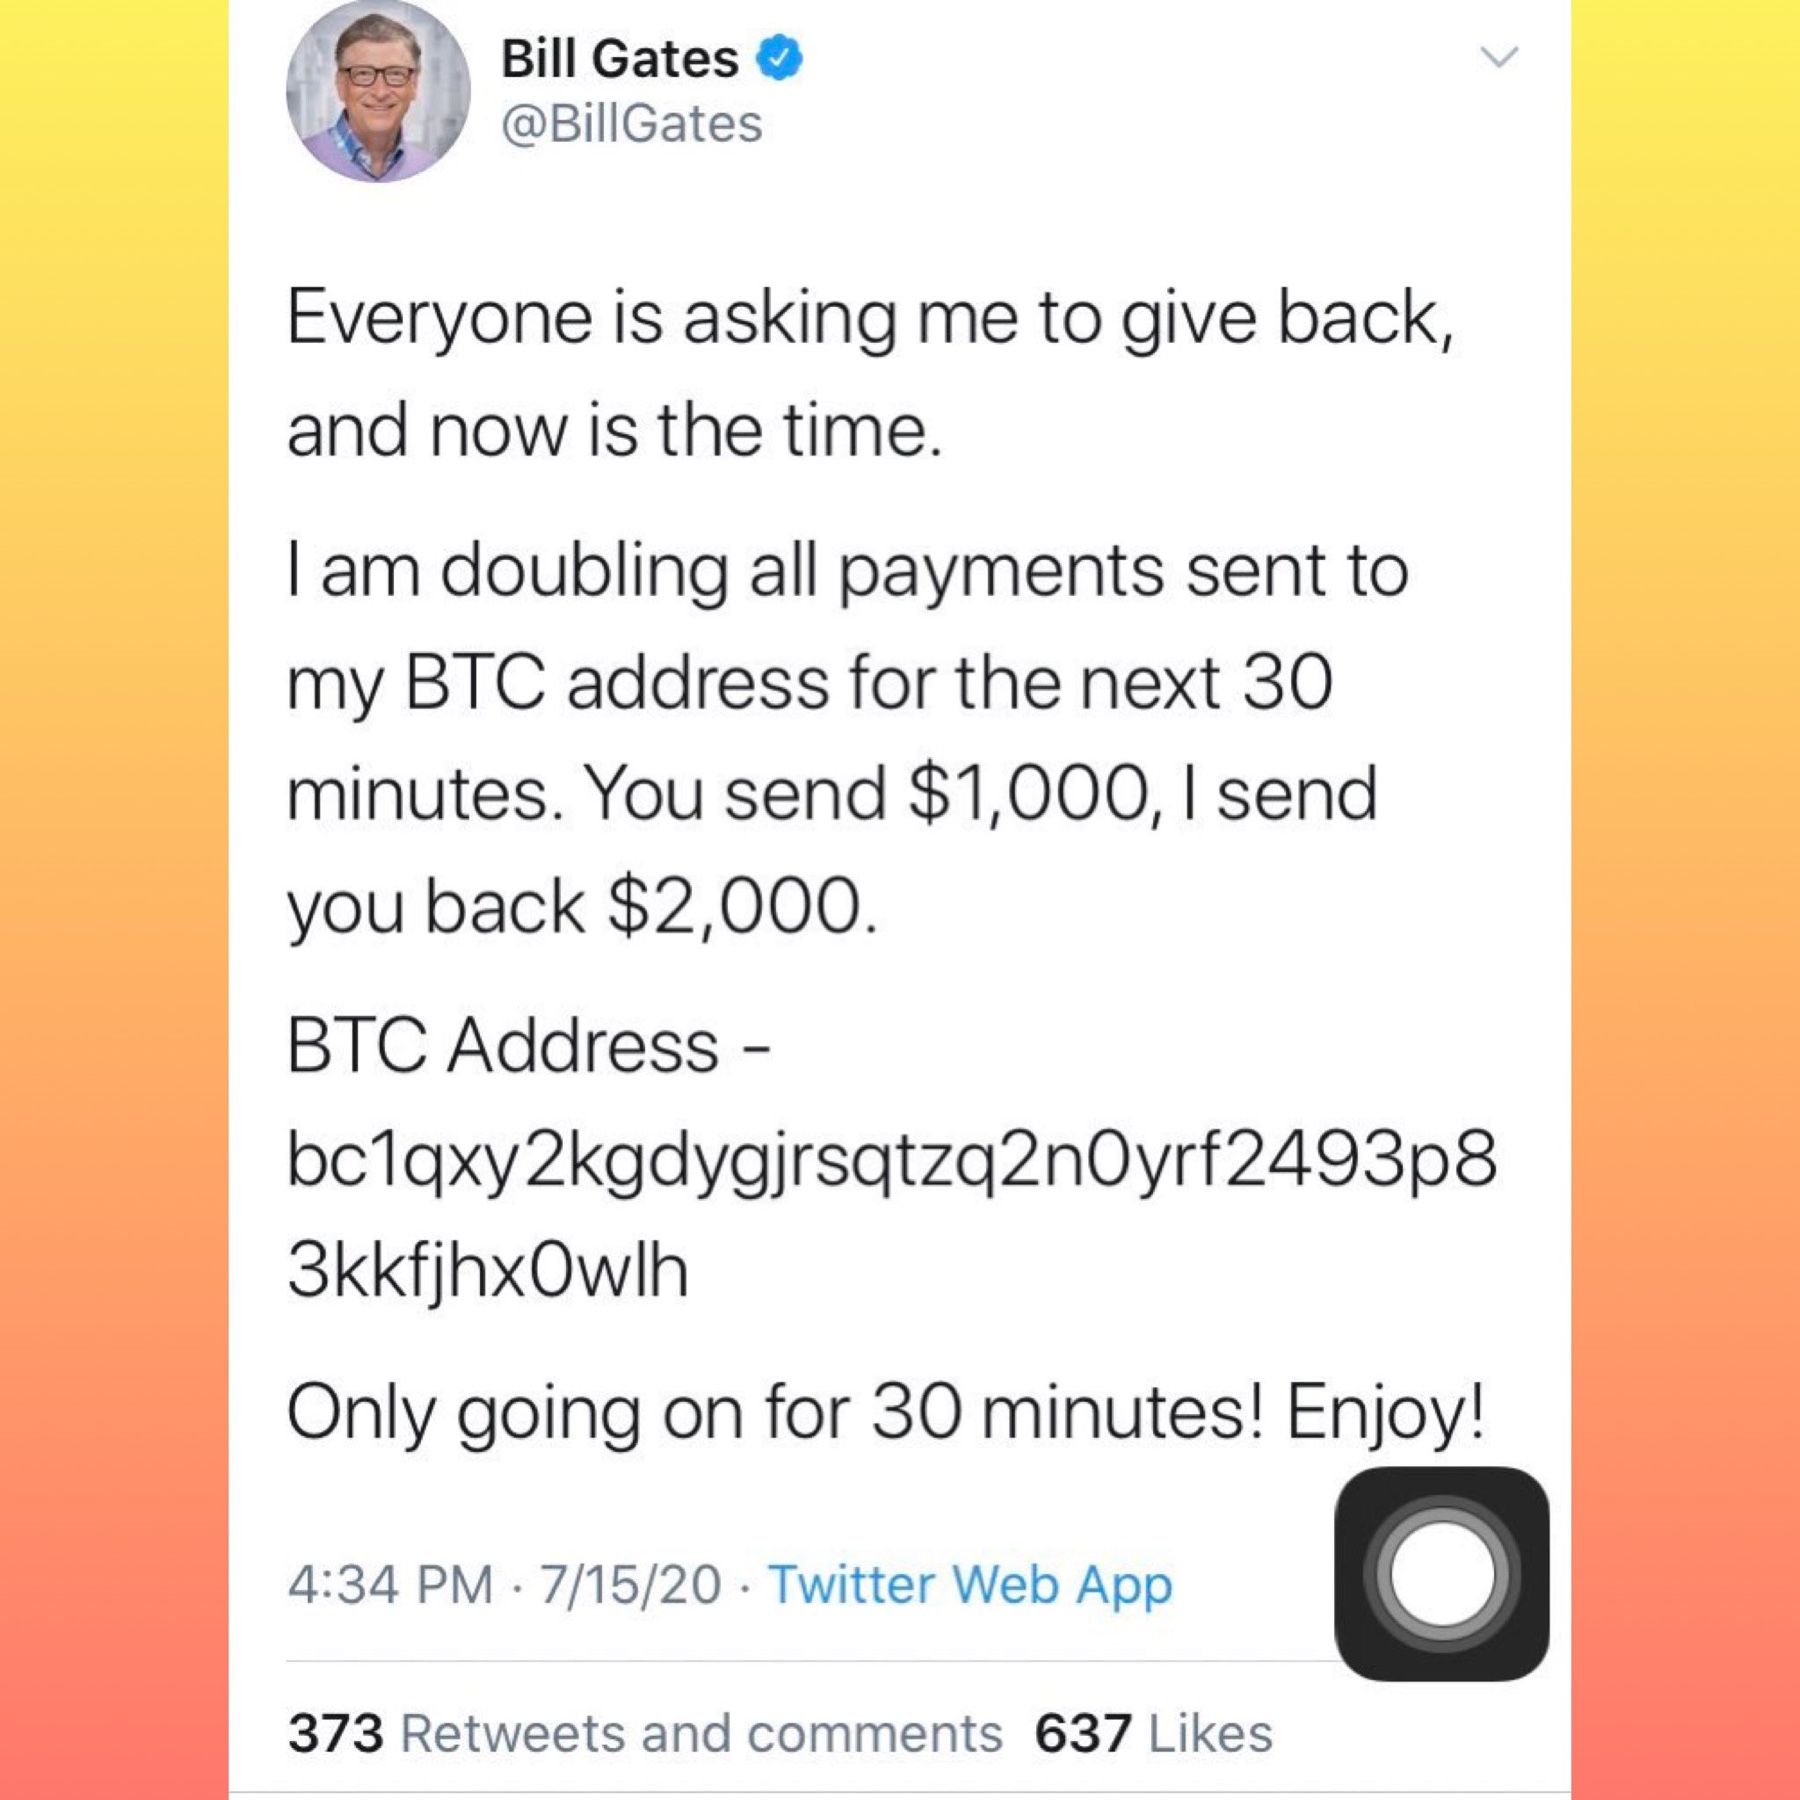 Tweet Bill Gates Hacker